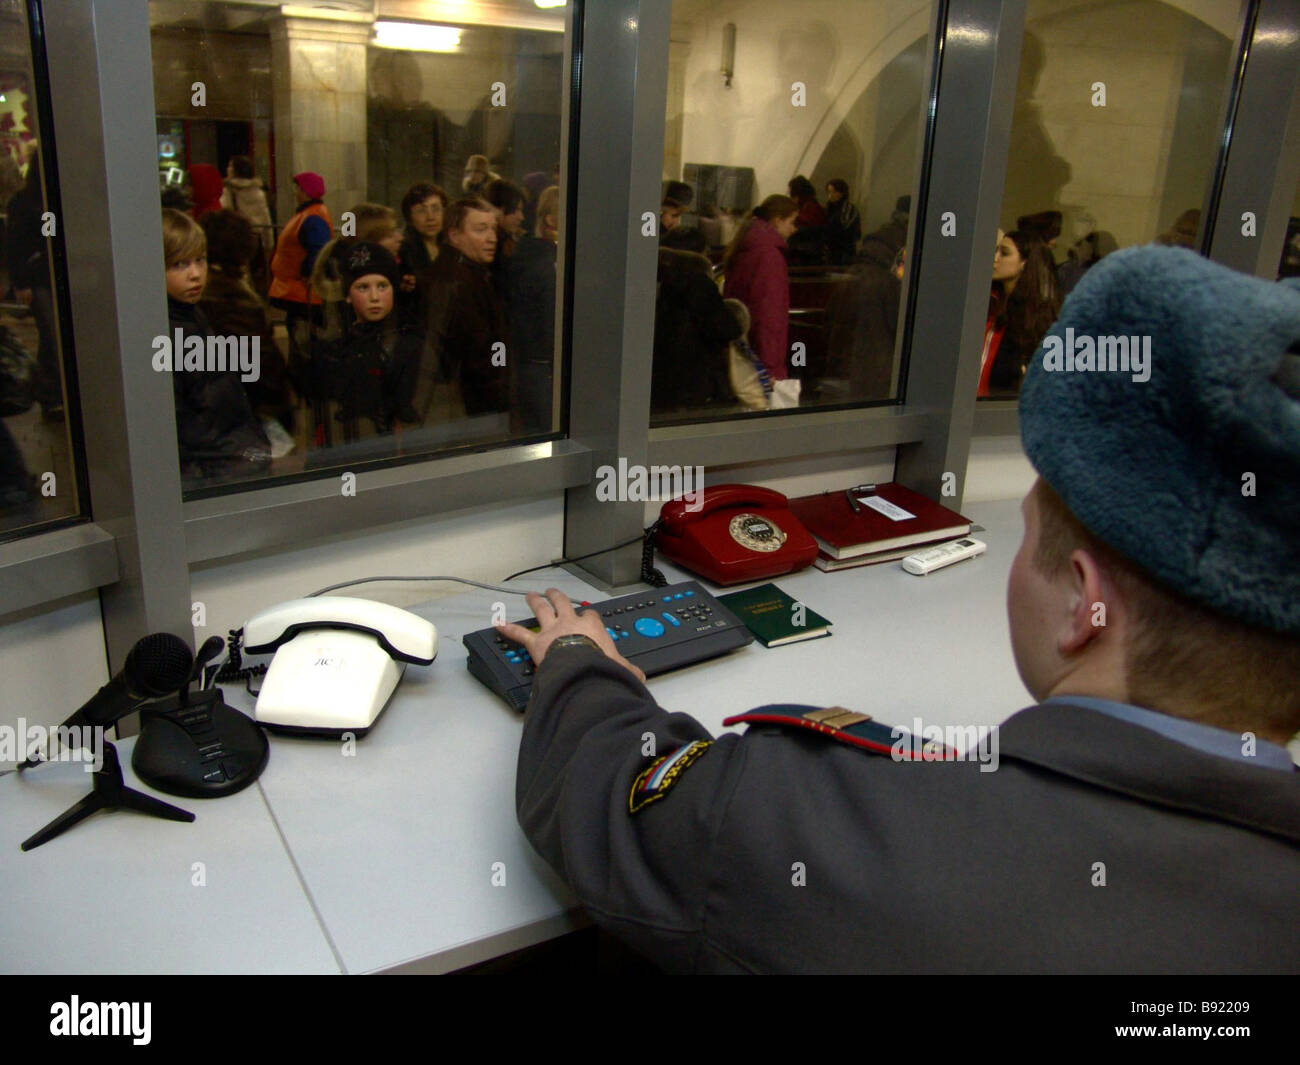 One of the new public order watchposts of the Internal Affairs division servicing Moscow underground Okhotny Ryad - Stock Image